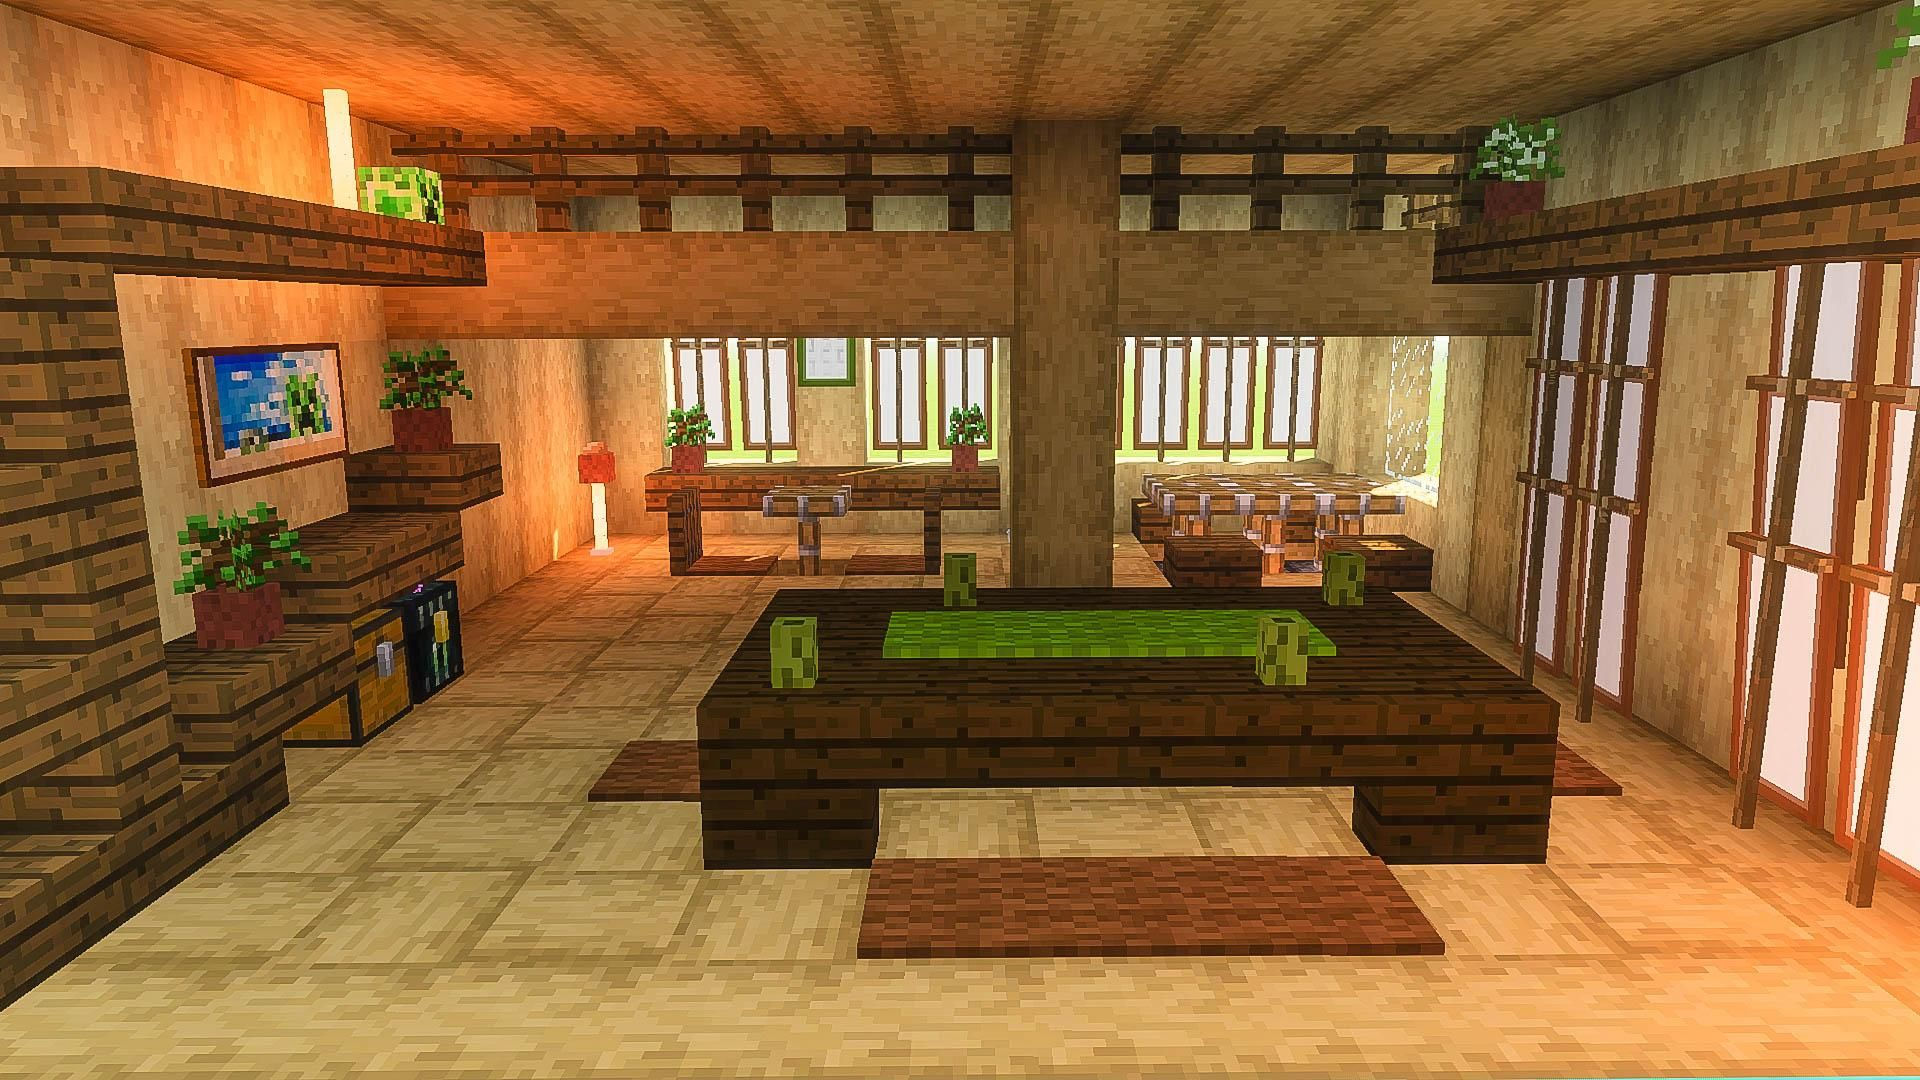 Japanese Inn Interior Minecraft Minecraft Room Minecraft